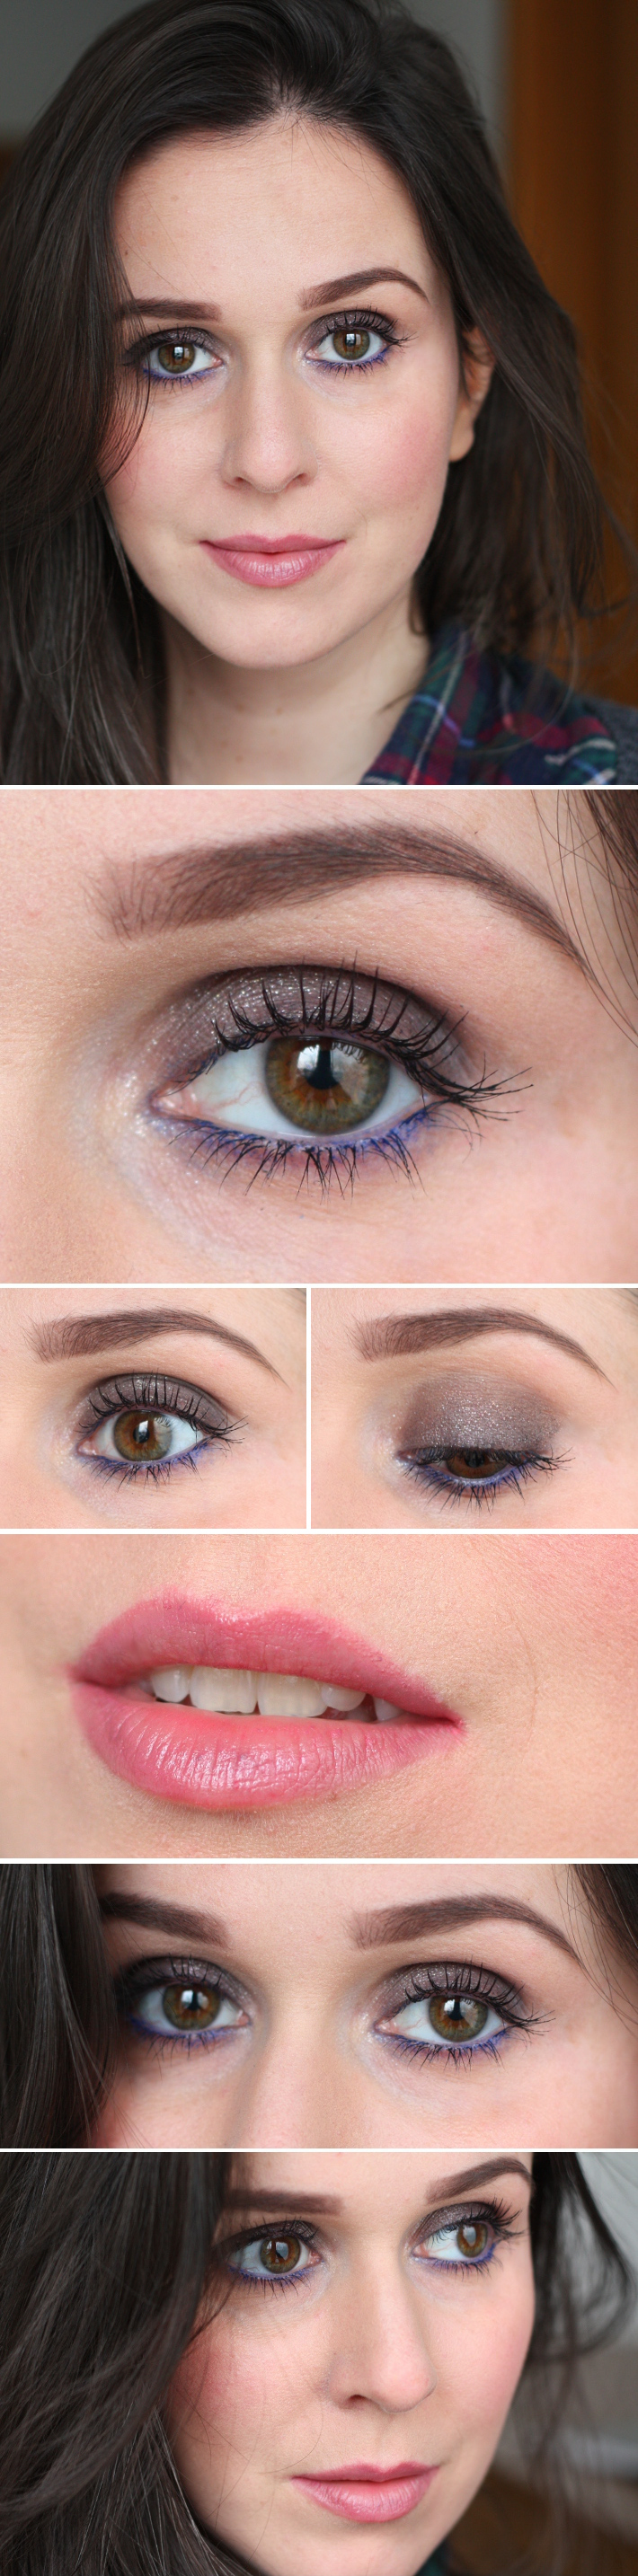 Beauty: shimmering smokey eye with blue tightlining